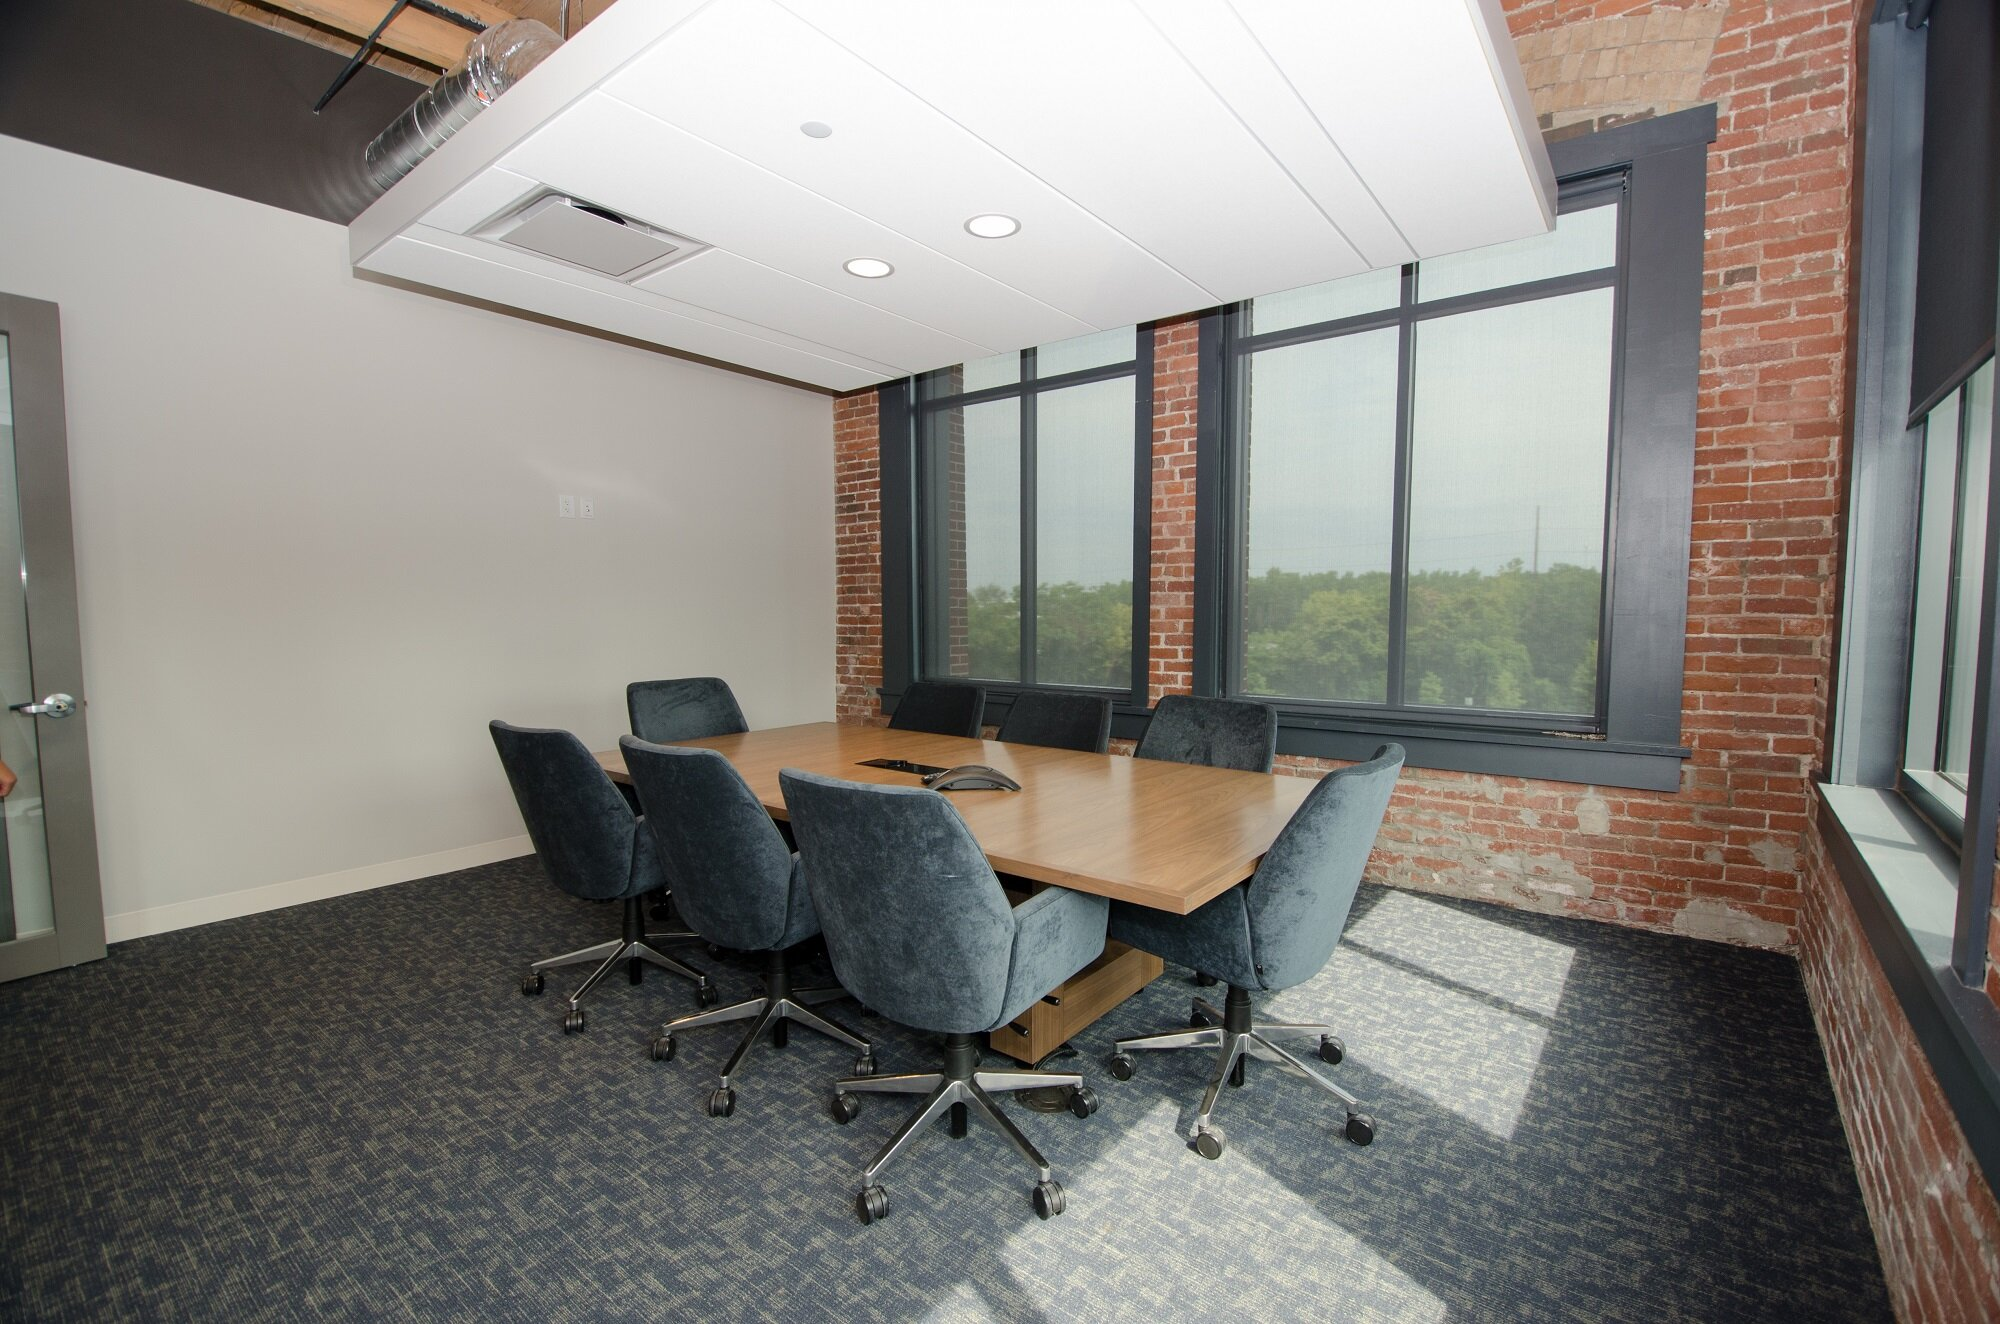 Not every meeting room at    Plaskolite's new headquarters    featured A/V equipment on day one, but thanks to cost-effective design-stage planning, every space has the power and network connections (see the outlets on the white wall) to add them easily.